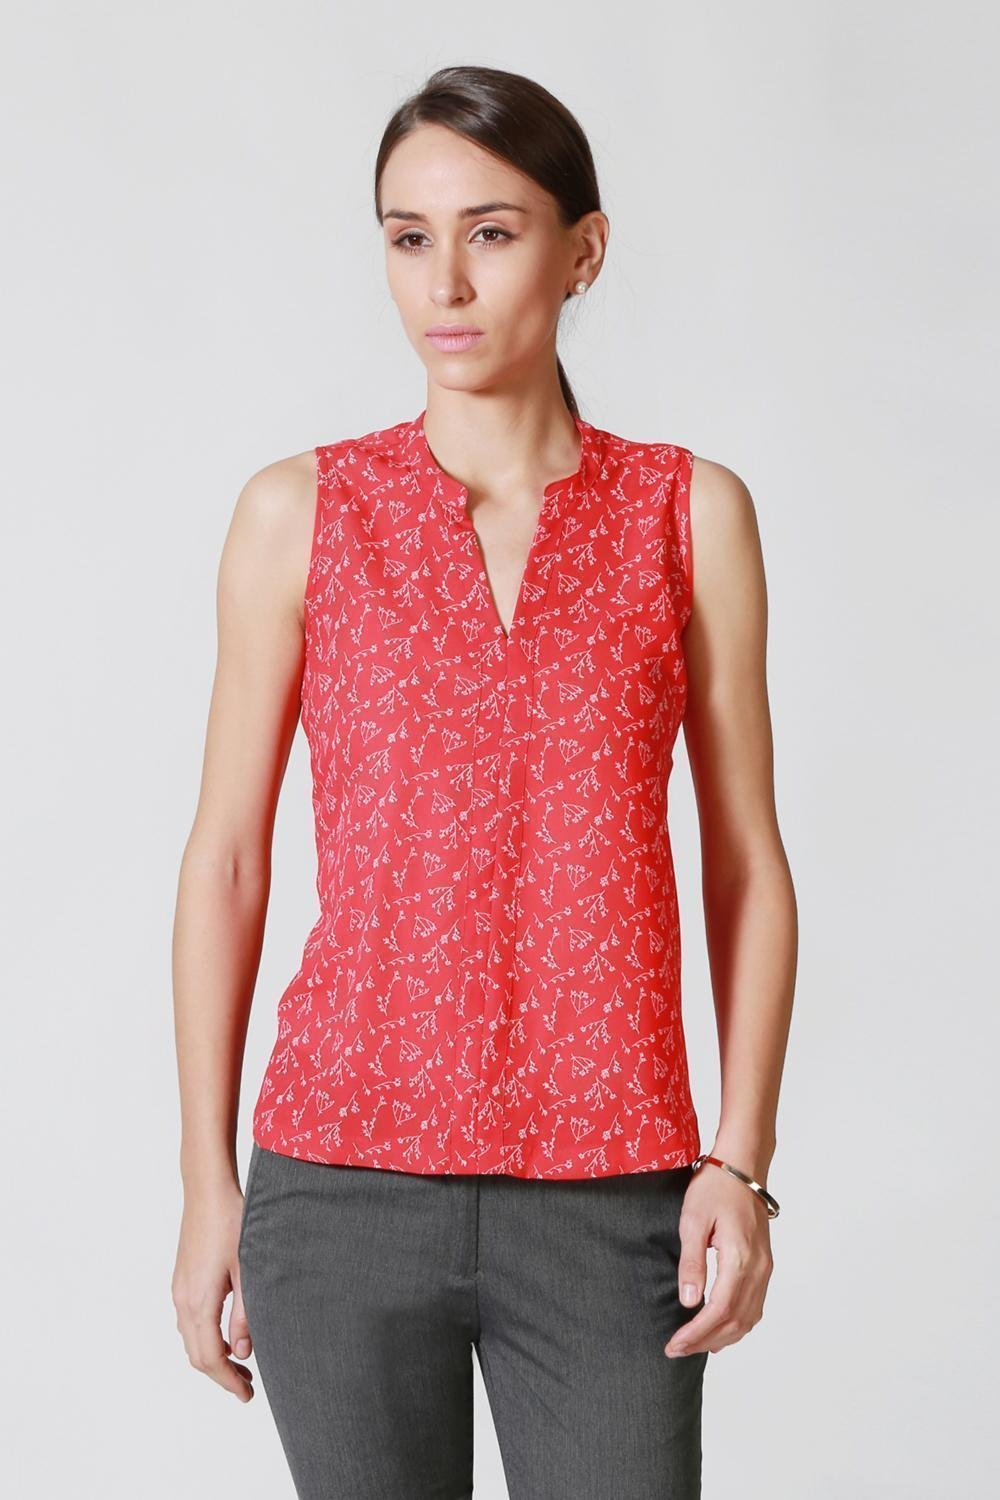 d55b5691b6 Solly Tees & Tops, Allen Solly Red Top for Women at Allensolly.com